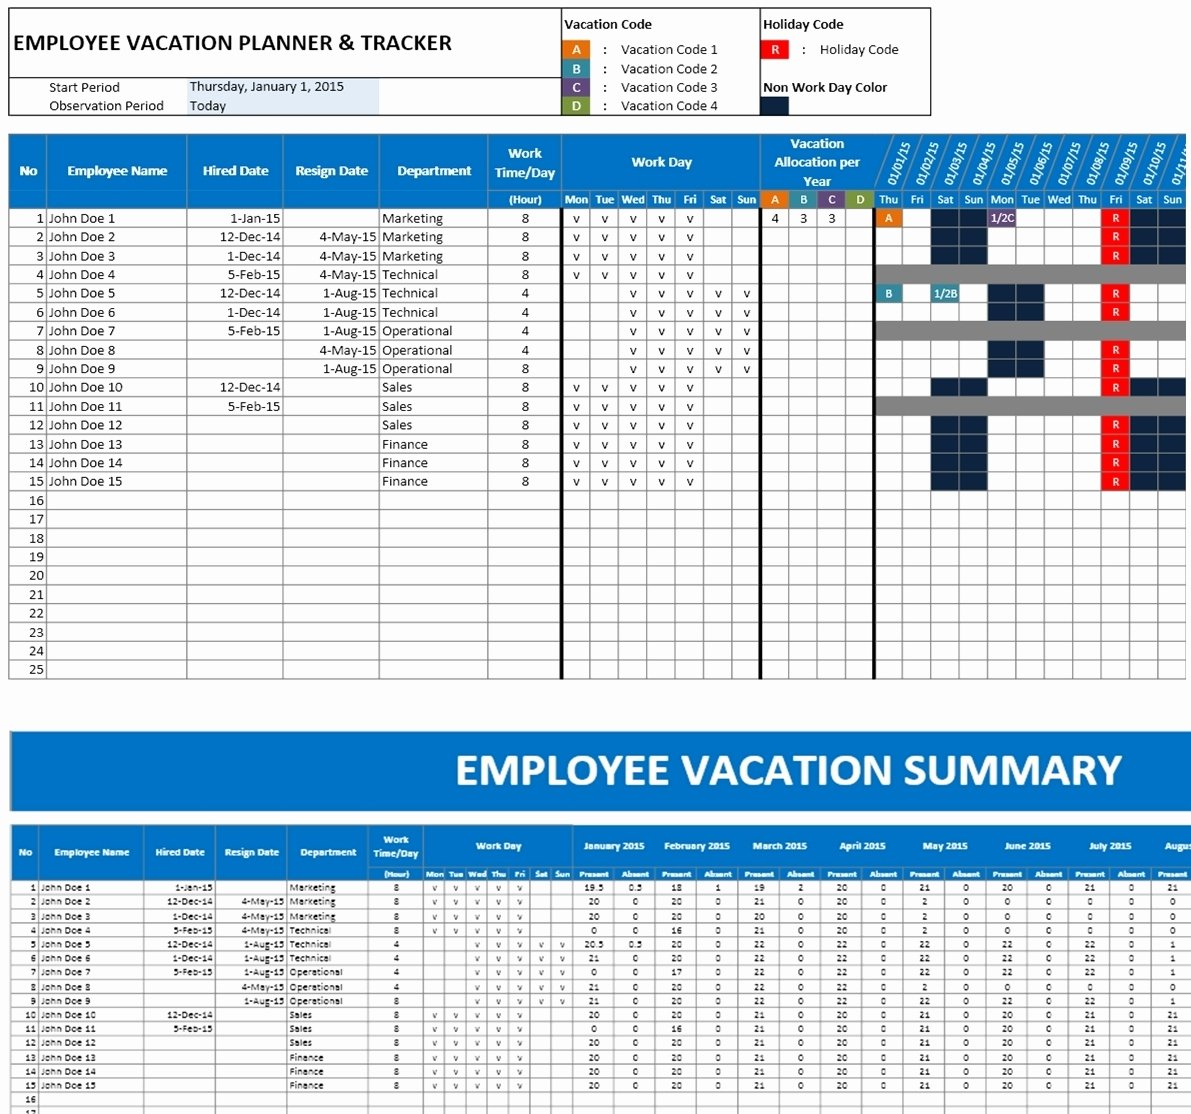 Employee Performance Tracking Template Excel Elegant Employee Vacation Planner Template Excel